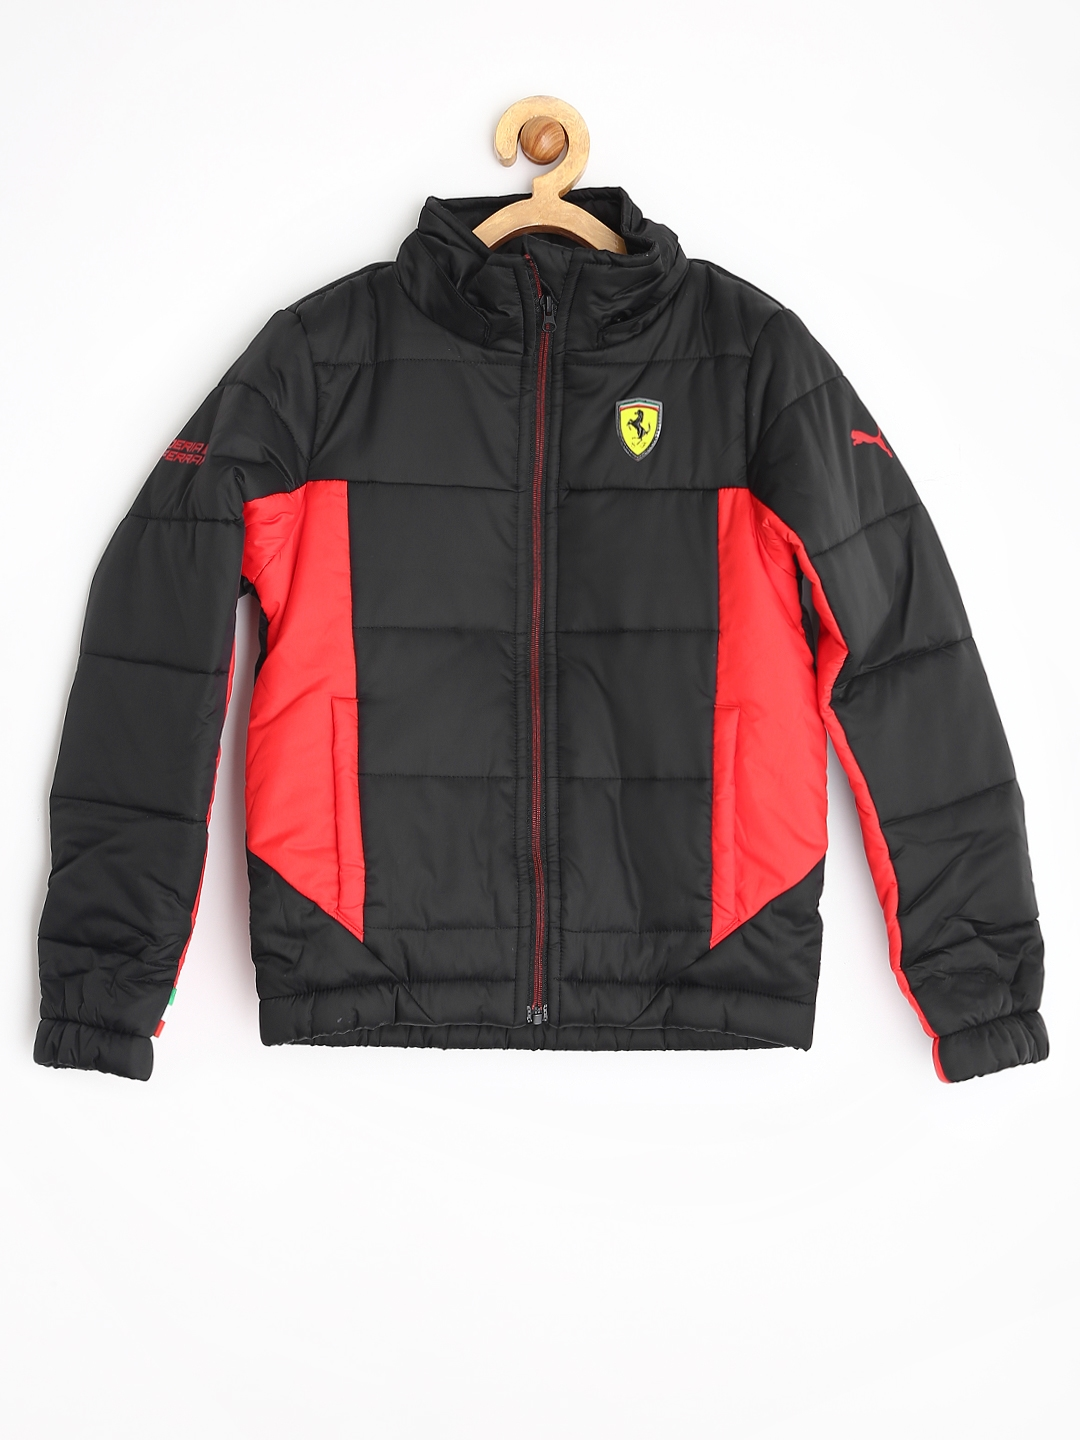 official uk medium dp lightweight sf co size amazon ferrari jacket puma clothing red